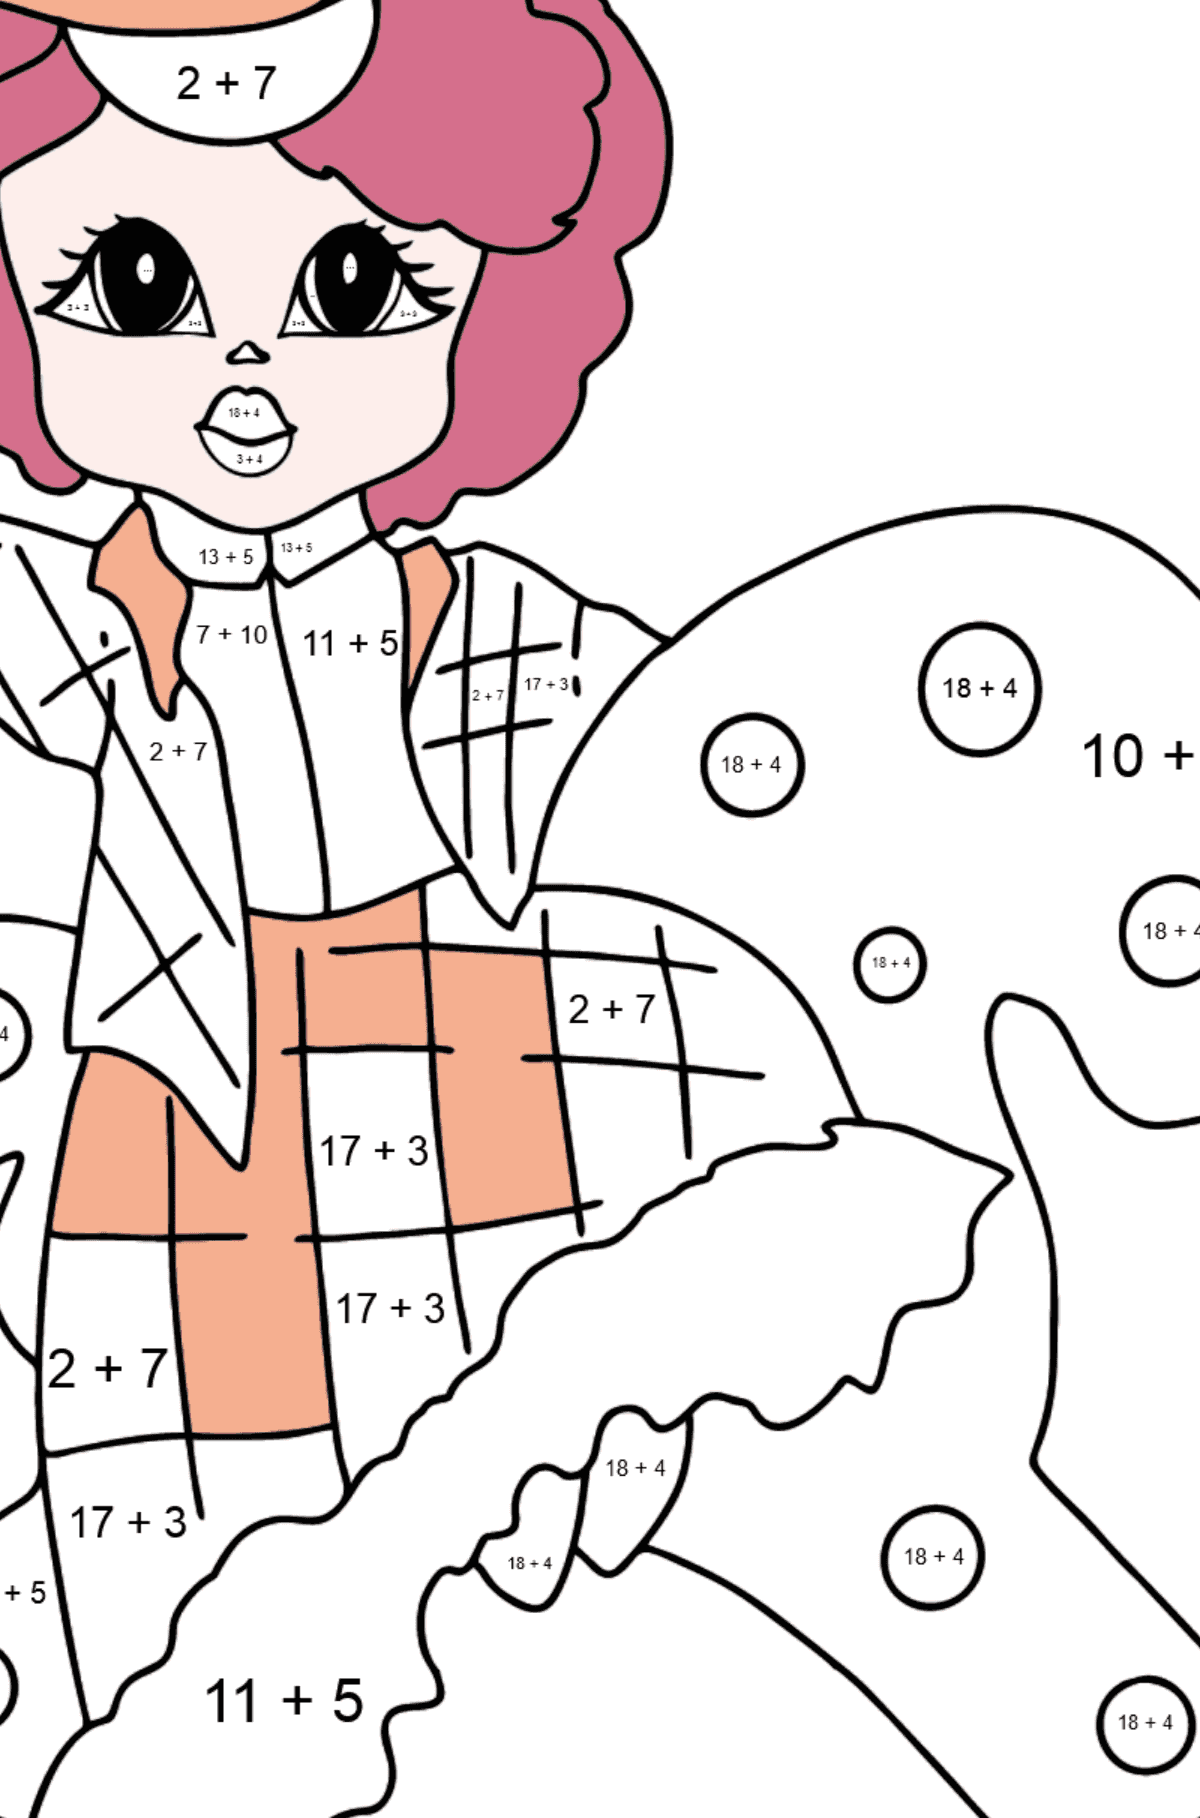 Coloring Page - A Princess on a Horse - For Girls - Math Coloring - Addition for Kids